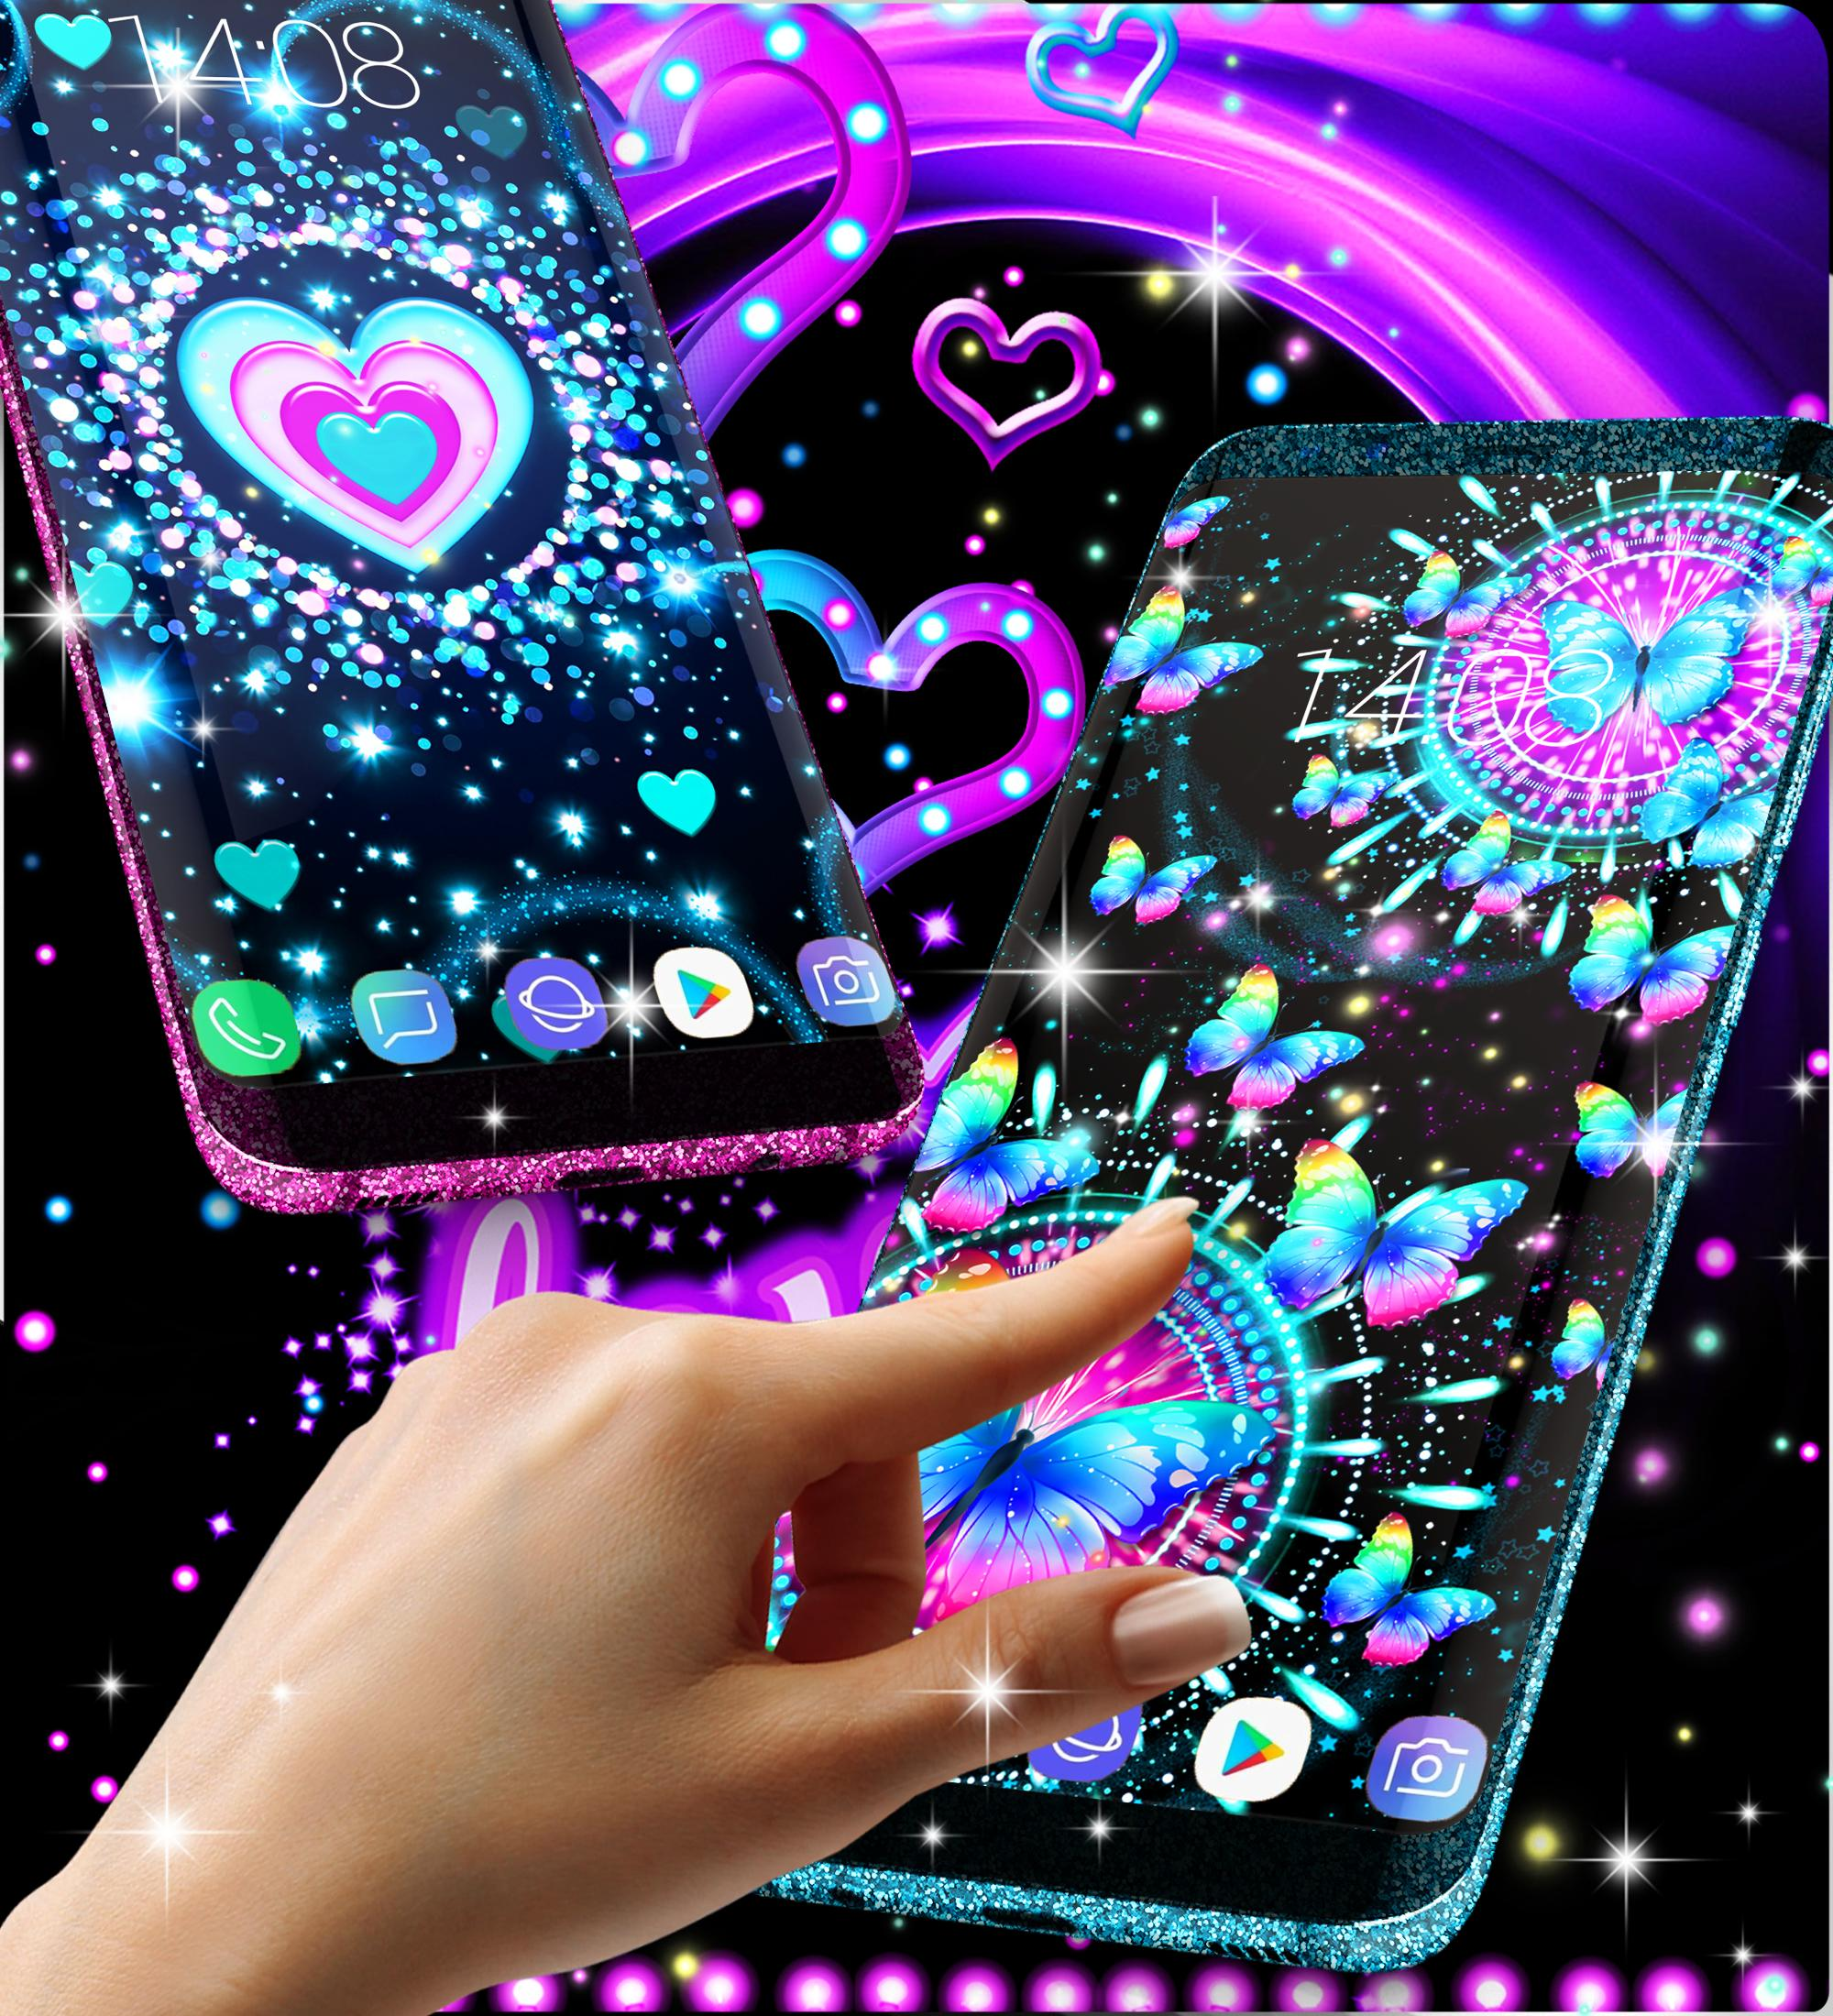 Luminous Live Wallpaper For Android Apk Download